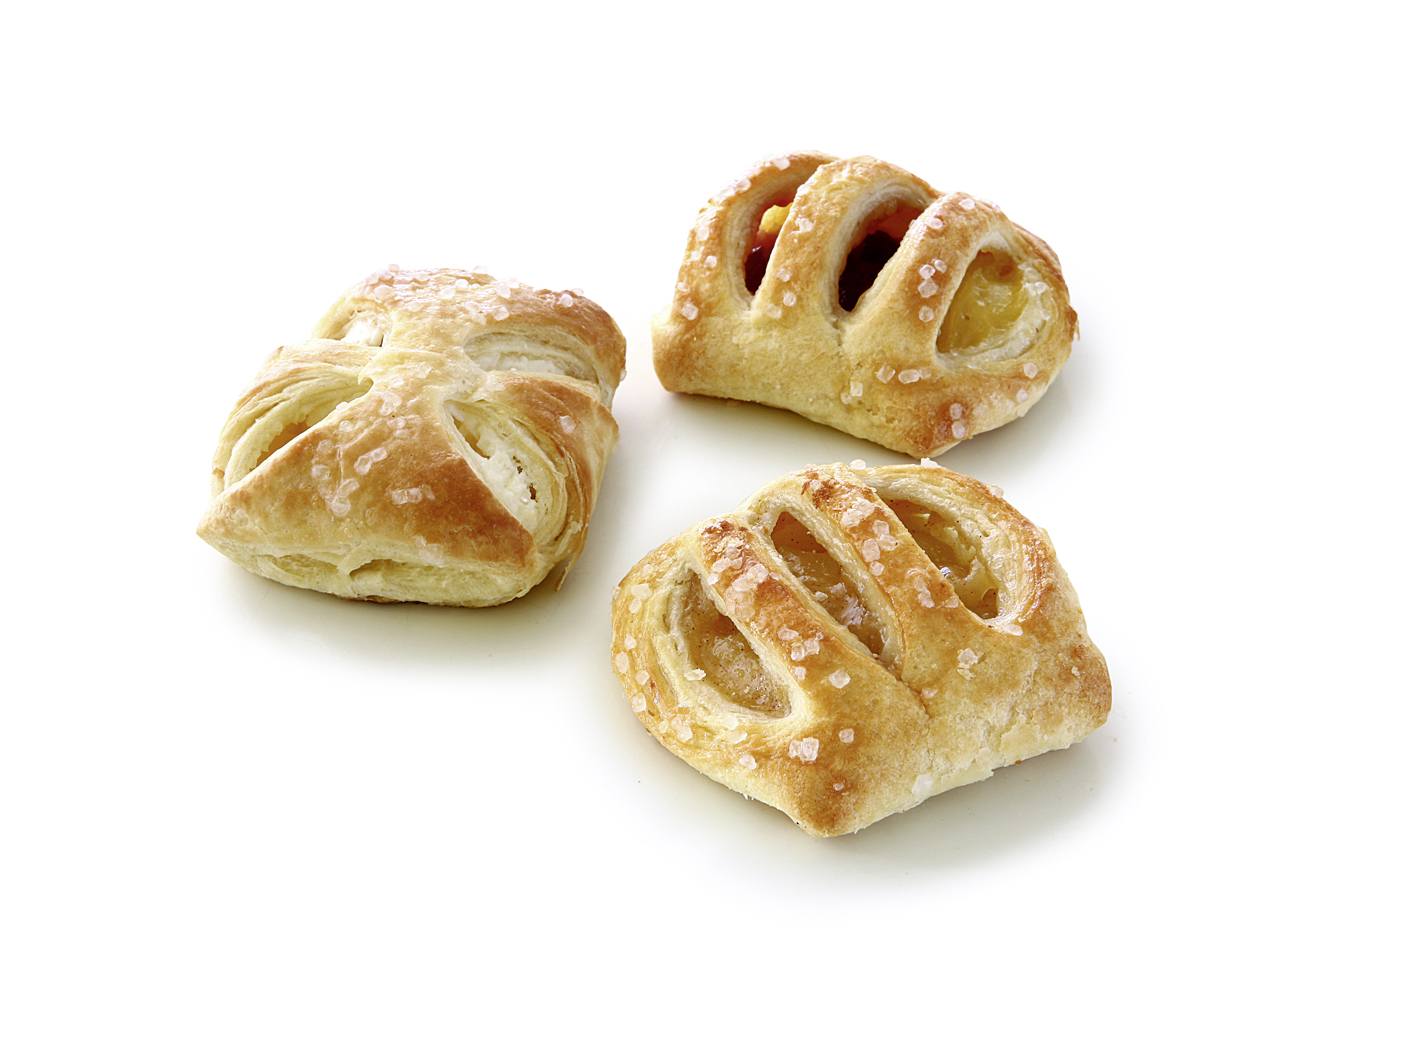 Fruity Danish Pastry Mix - Fruity Danish Pastry Mix with Apple Pastry, Cherry Vanilla Pastry and Curd Cheese Pastry